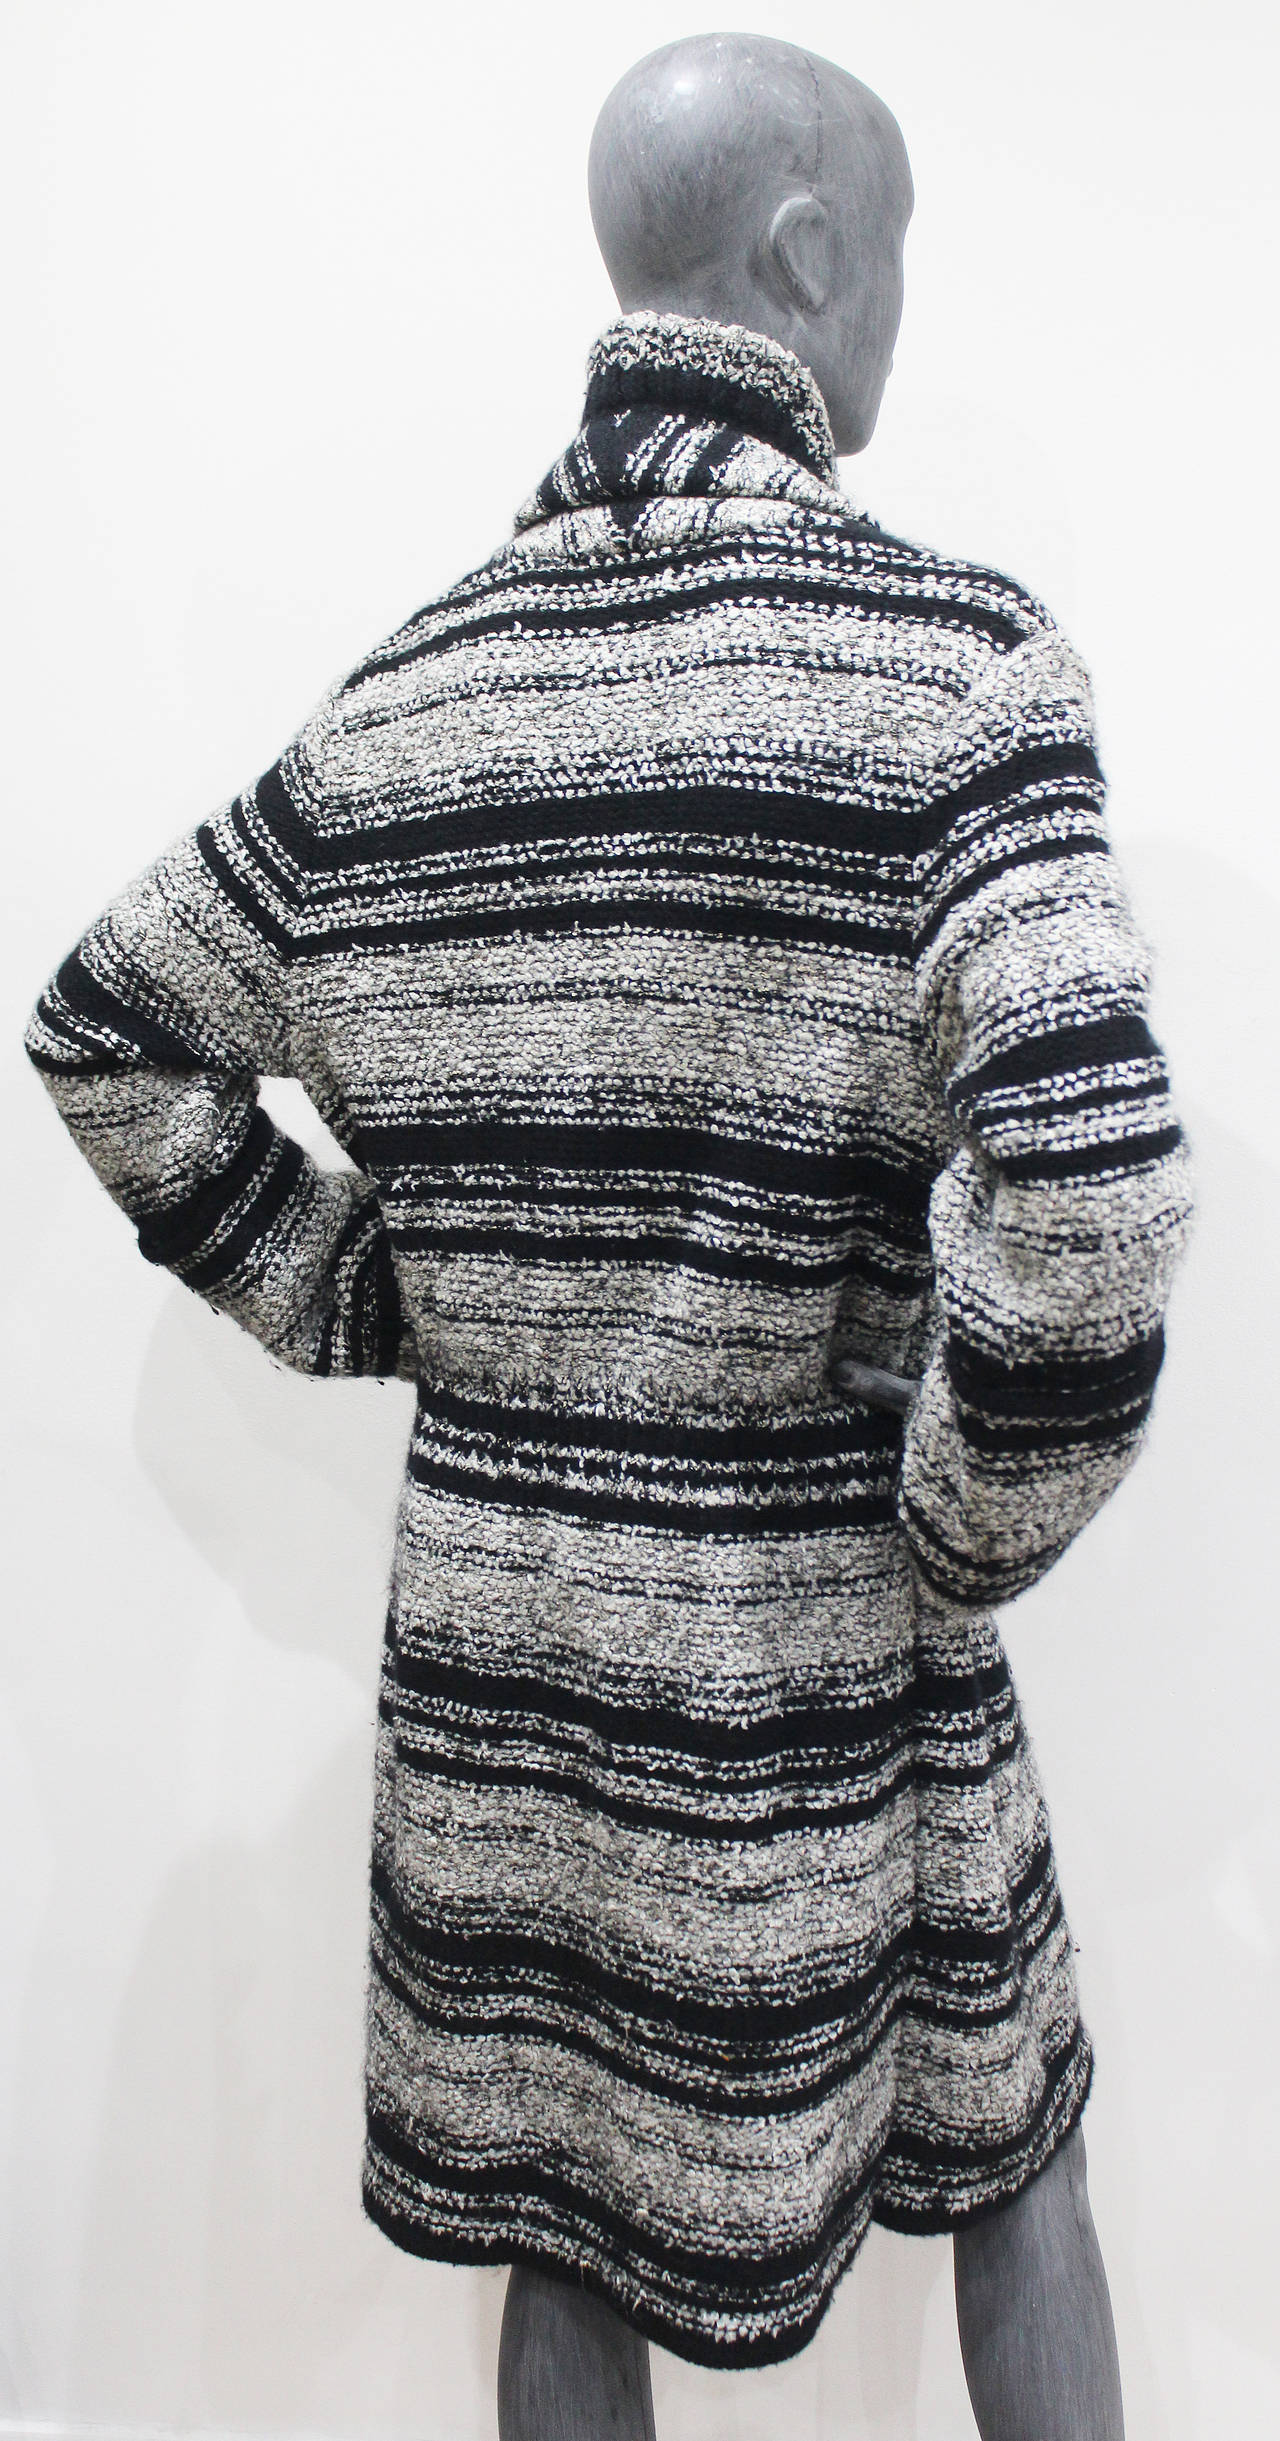 Chanel Oversized Knitted Tweed Cardigan Coat c. 2006 4